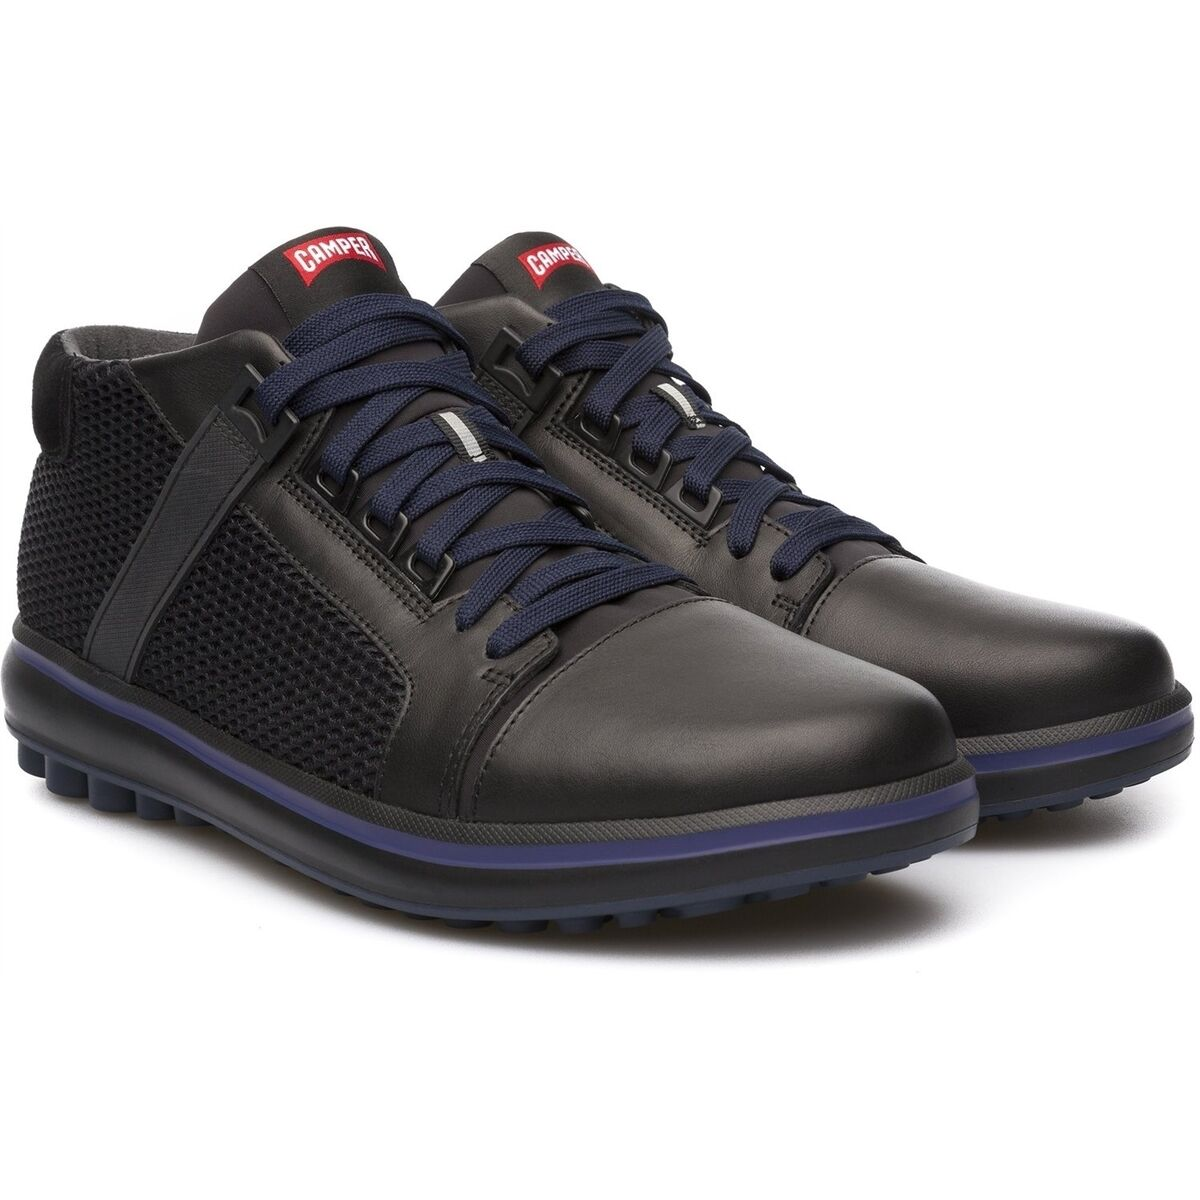 Mens Camper Shoes Black Pelotas Unball Sneakers Casual Trainers NEW